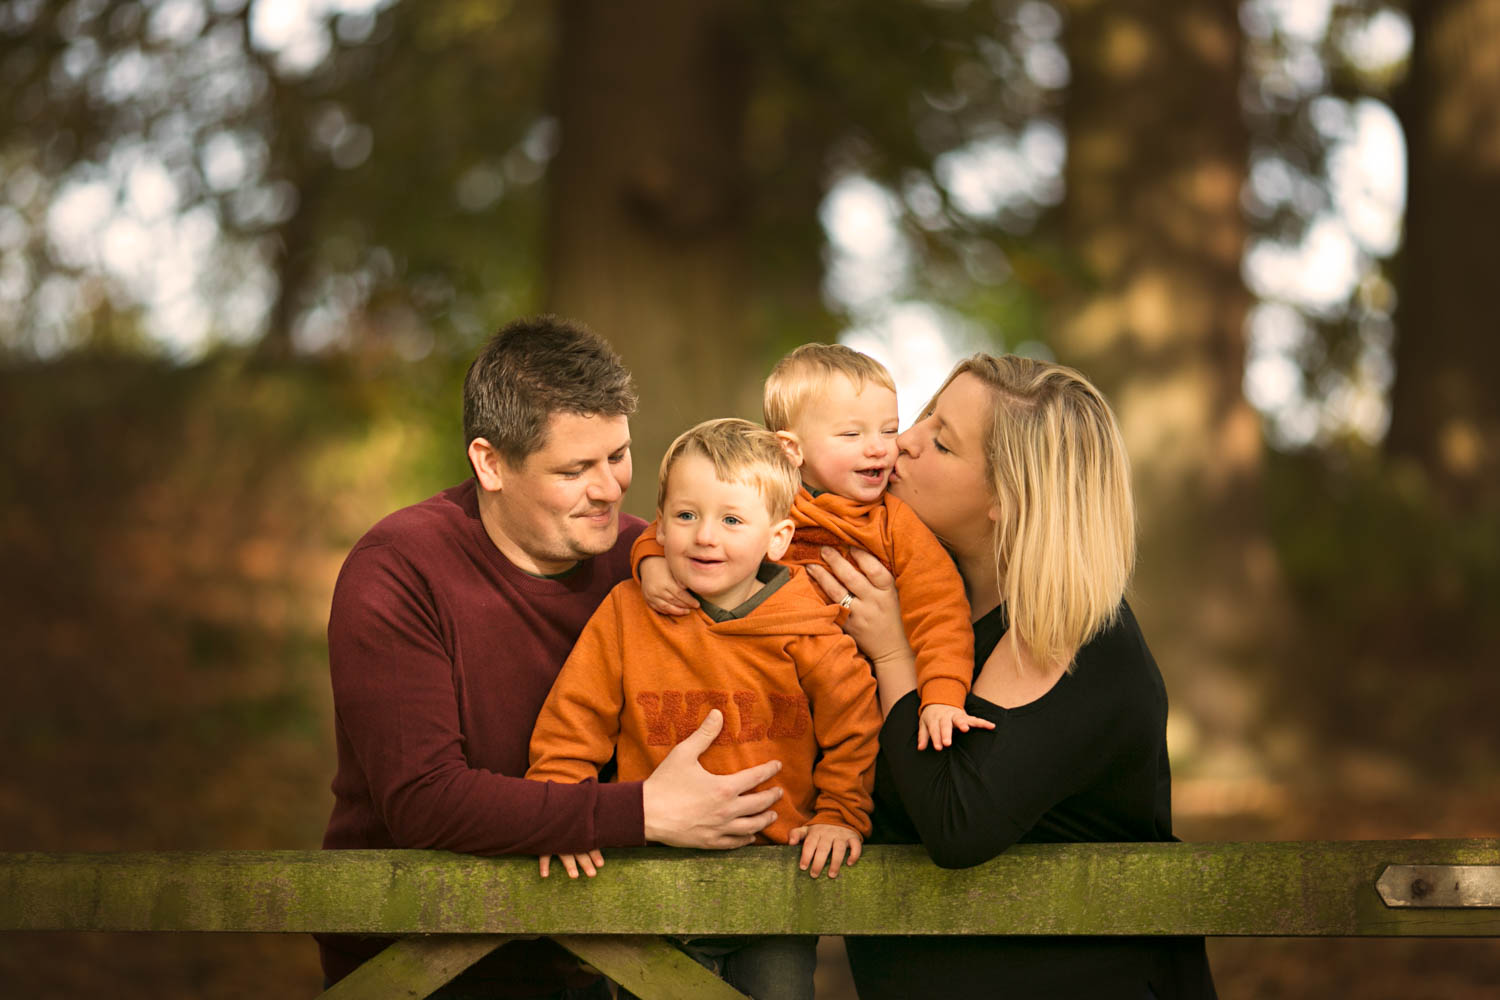 Family posing againgst a gate with mum kissing son during an Autumn family portrait session at Ampthill Park in Bedford.